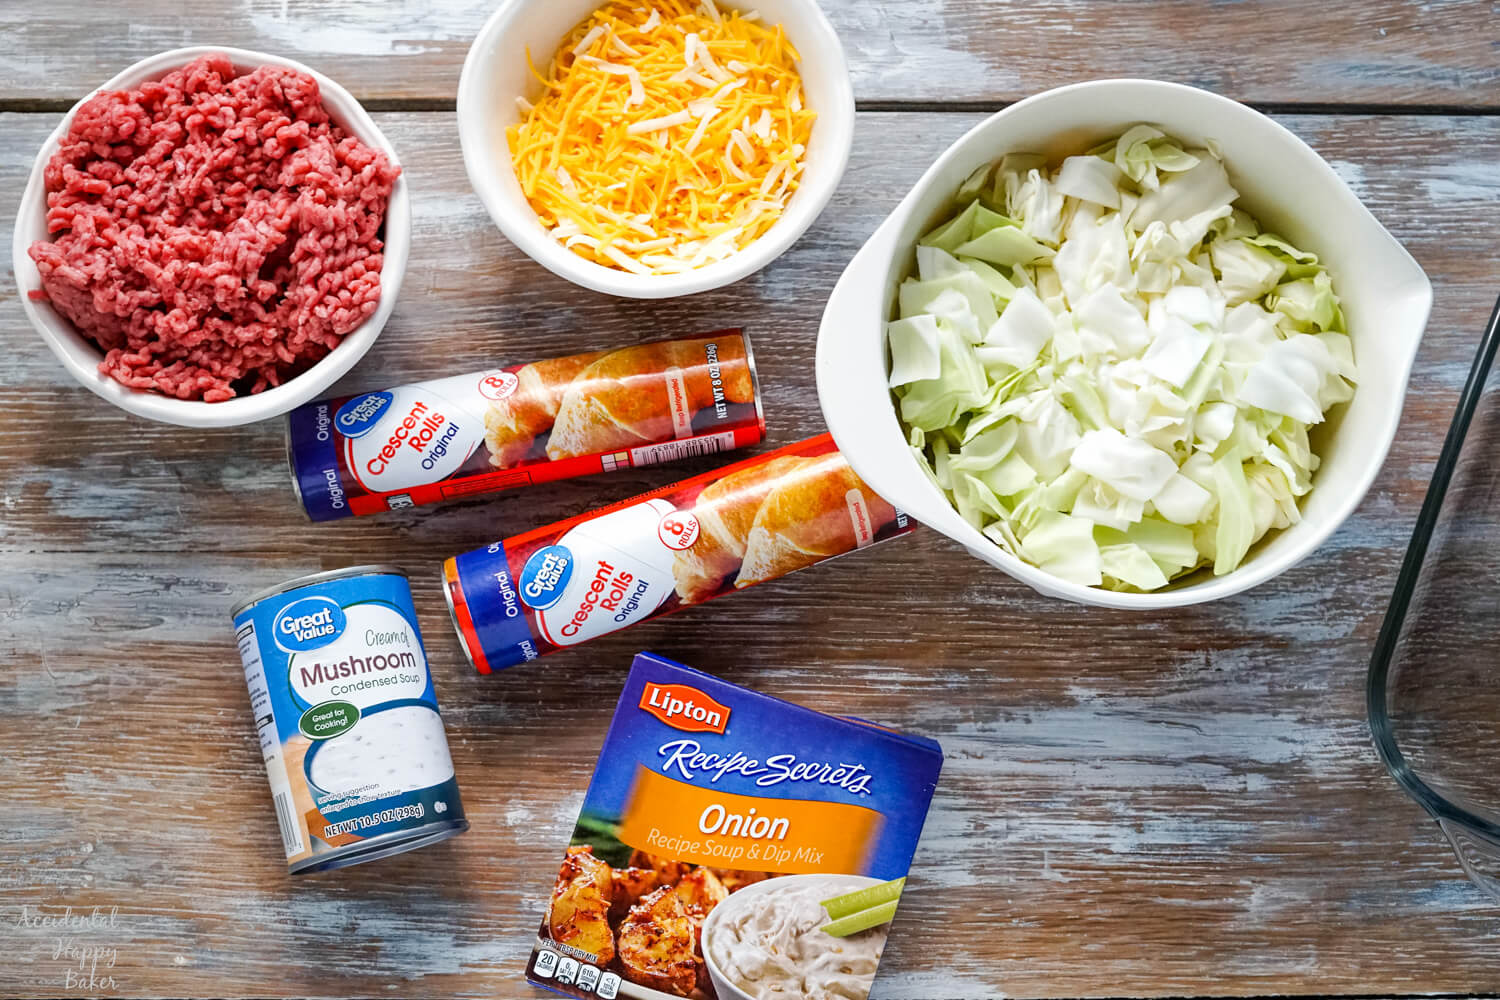 The ingredients needed to make Runza casserole; crescent rolls, ground beef, cabbage, cheese, onion soup mix, and cream of mushroom soup.